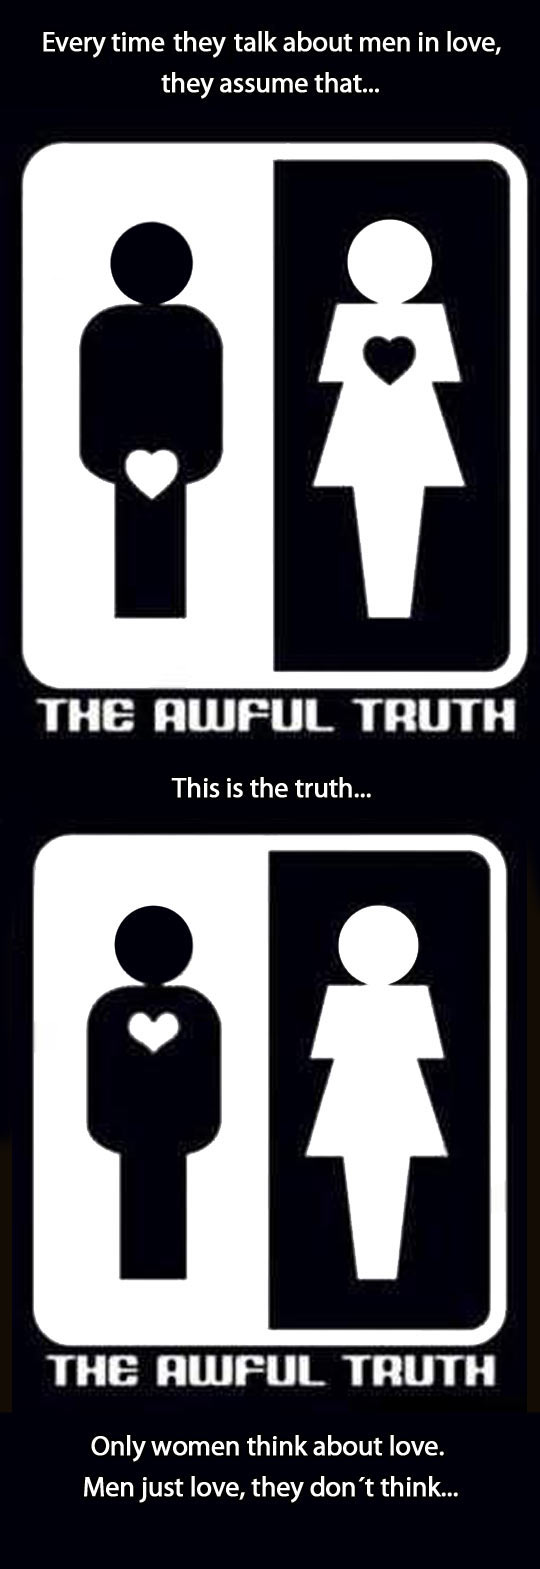 The truth about love…